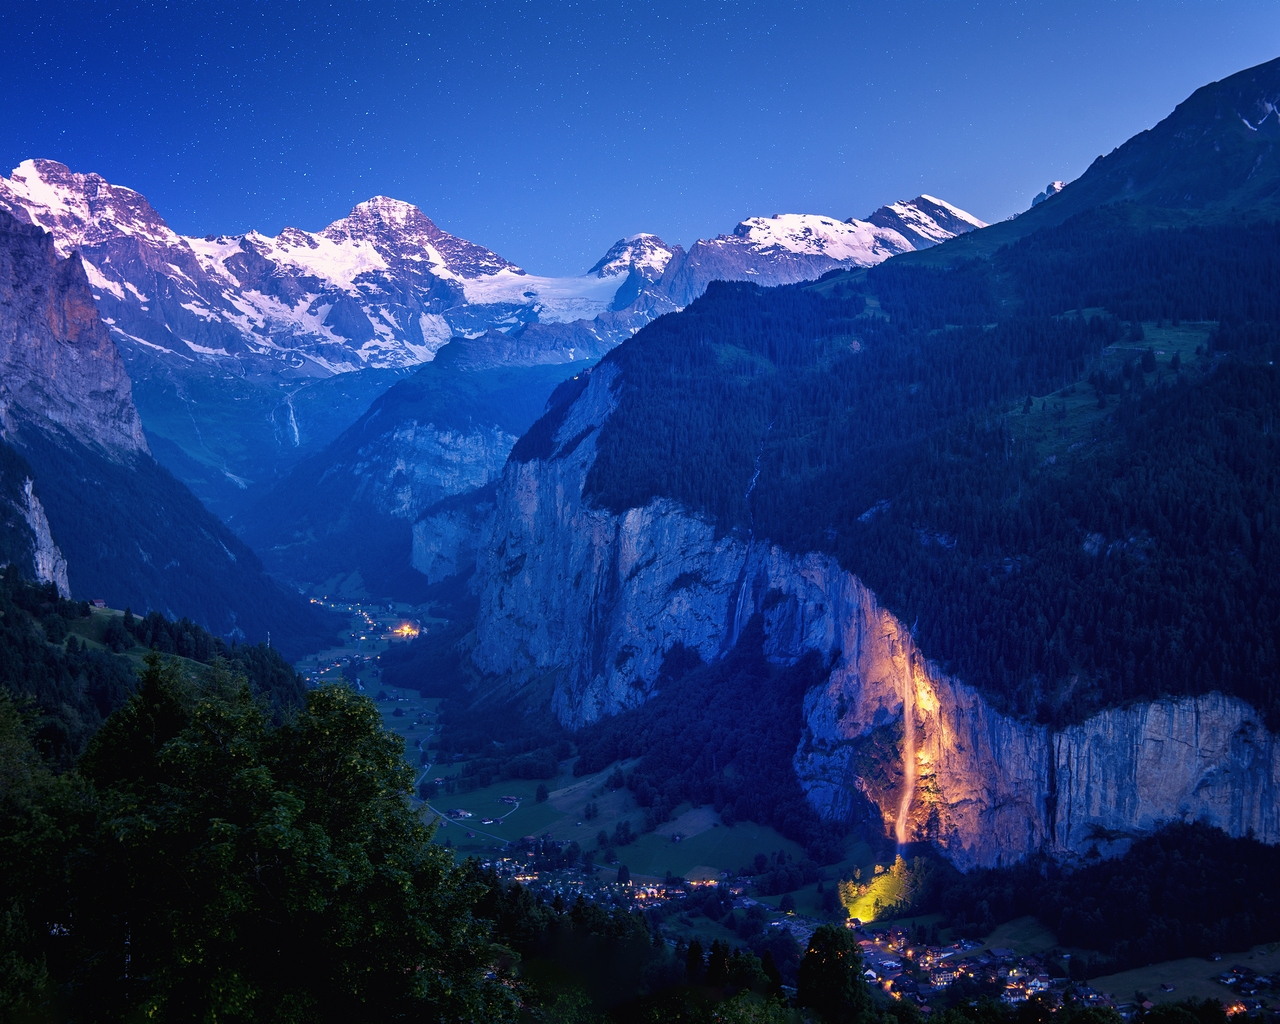 Lauterbrunnen Valley for 1280 x 1024 resolution